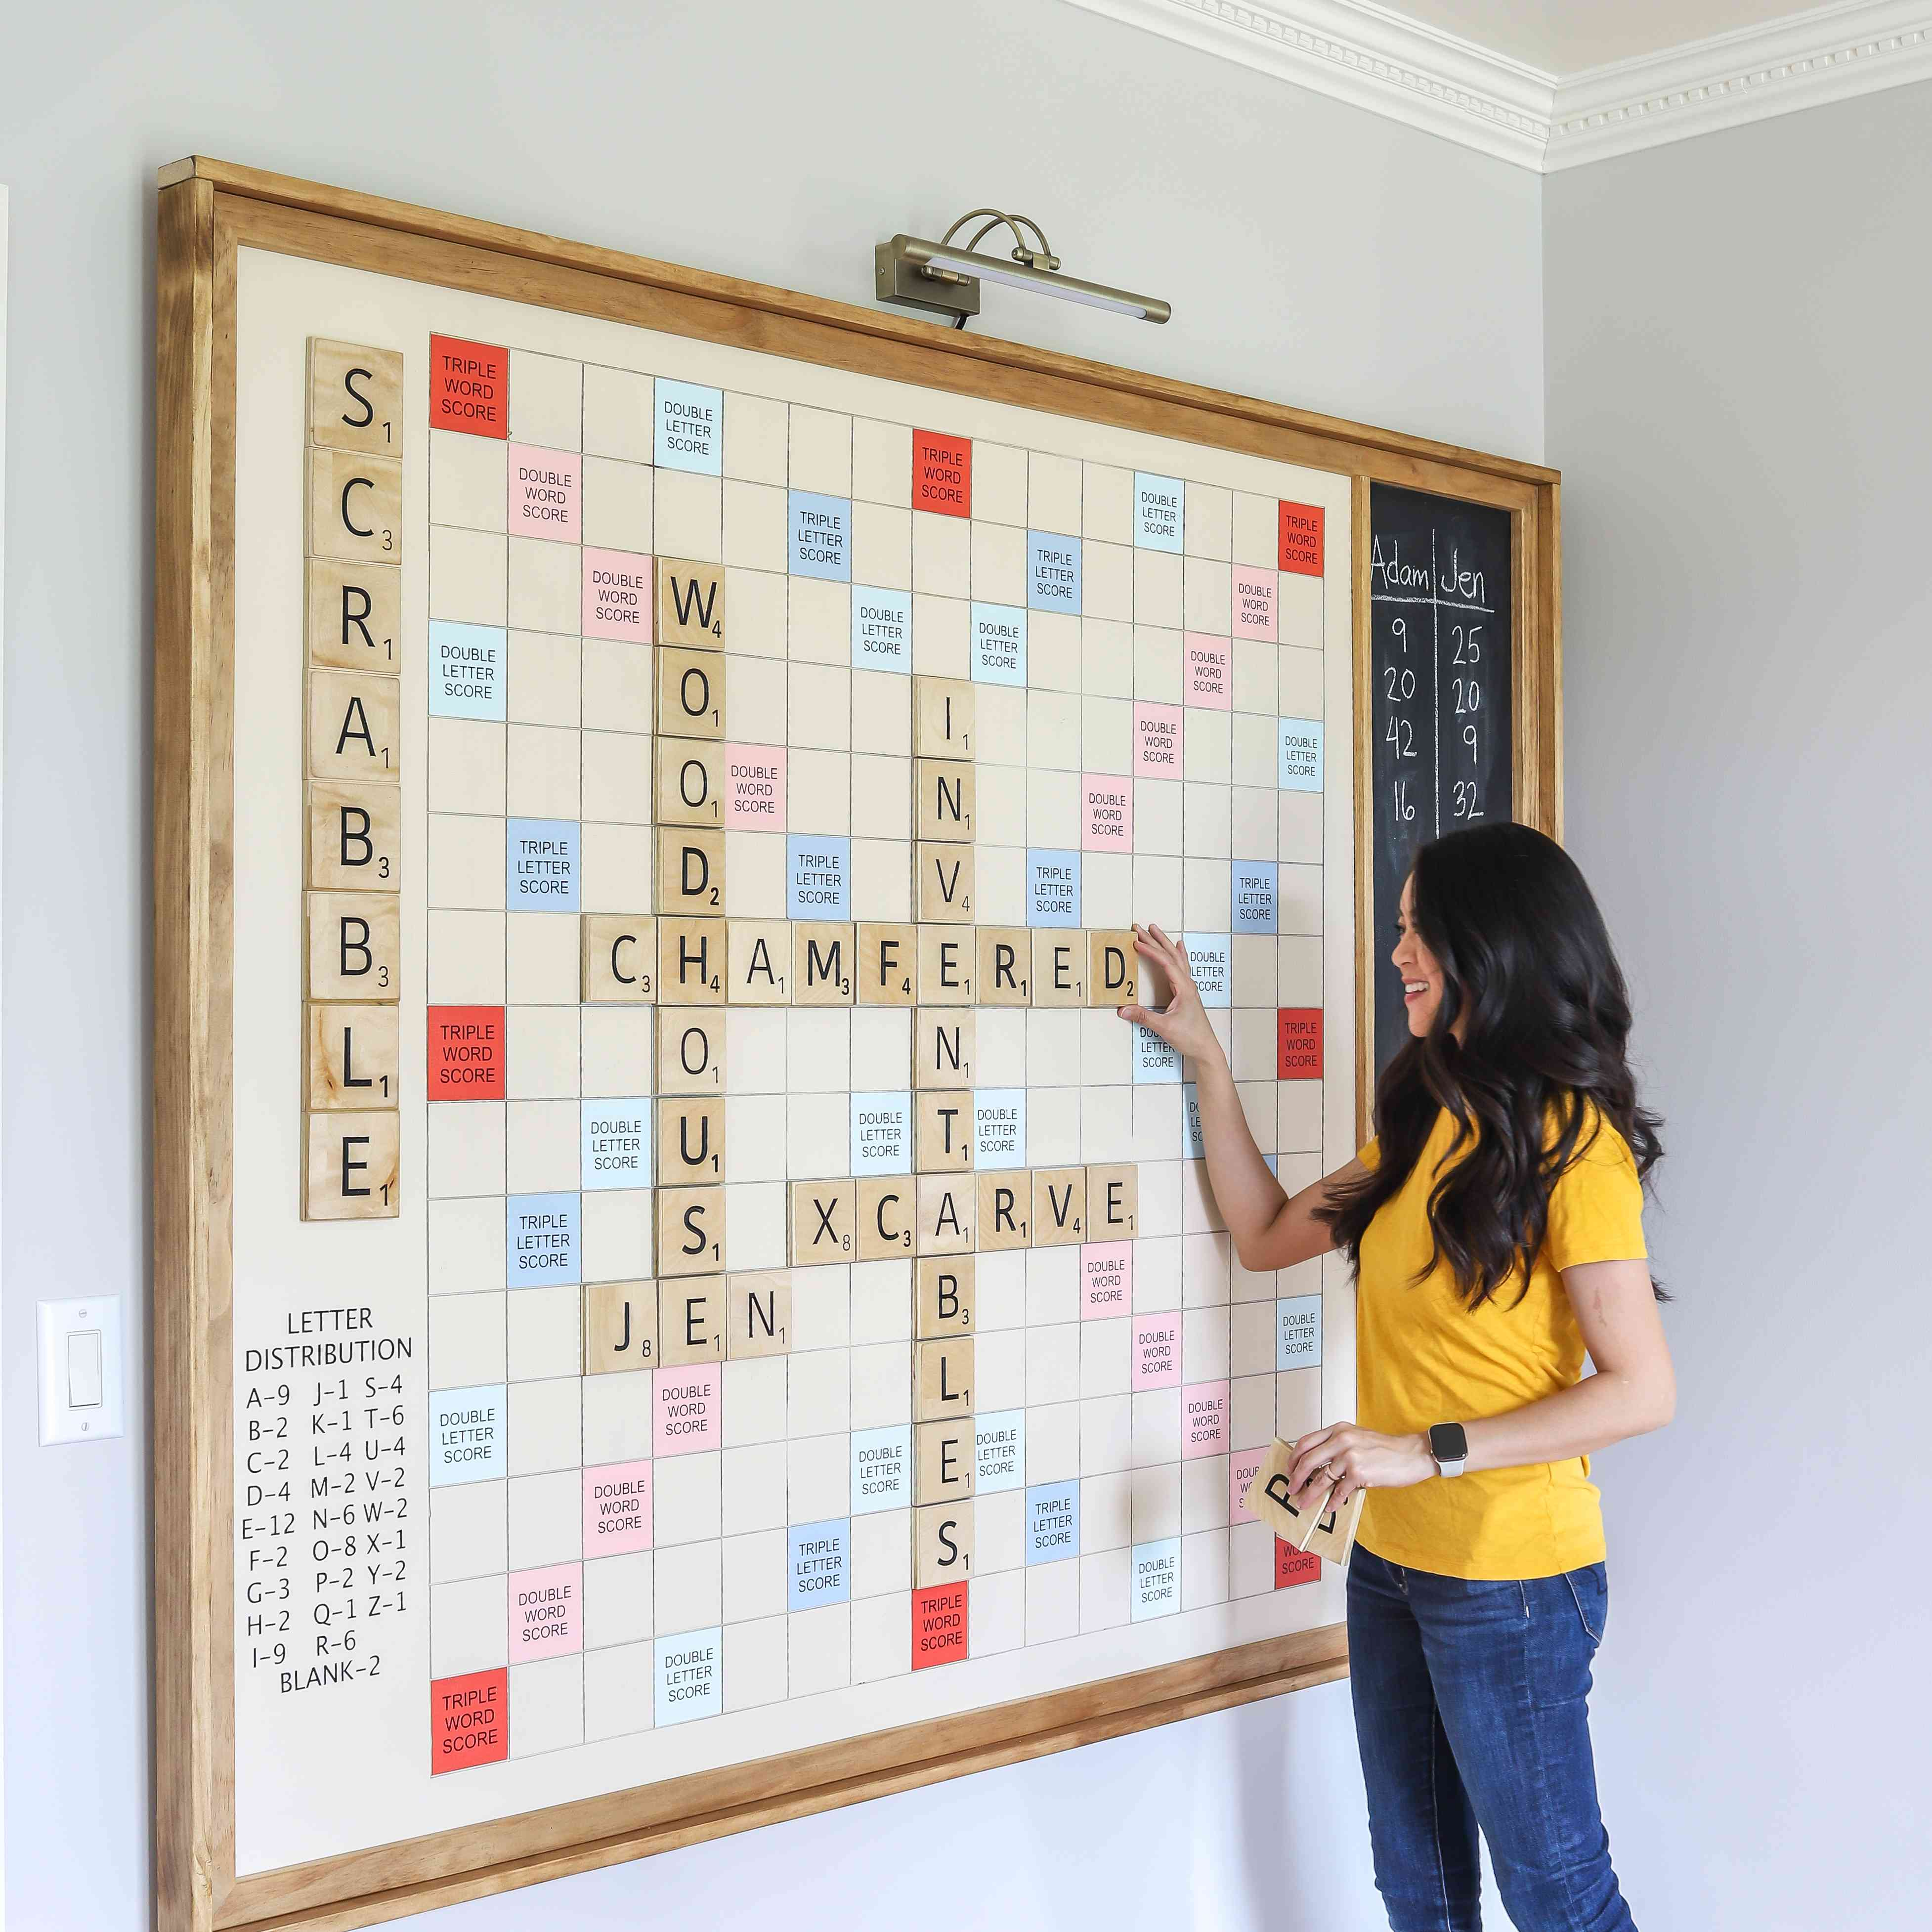 Jen Woodhouse poses next to her DIY giant Scrabble board mounted on a wall